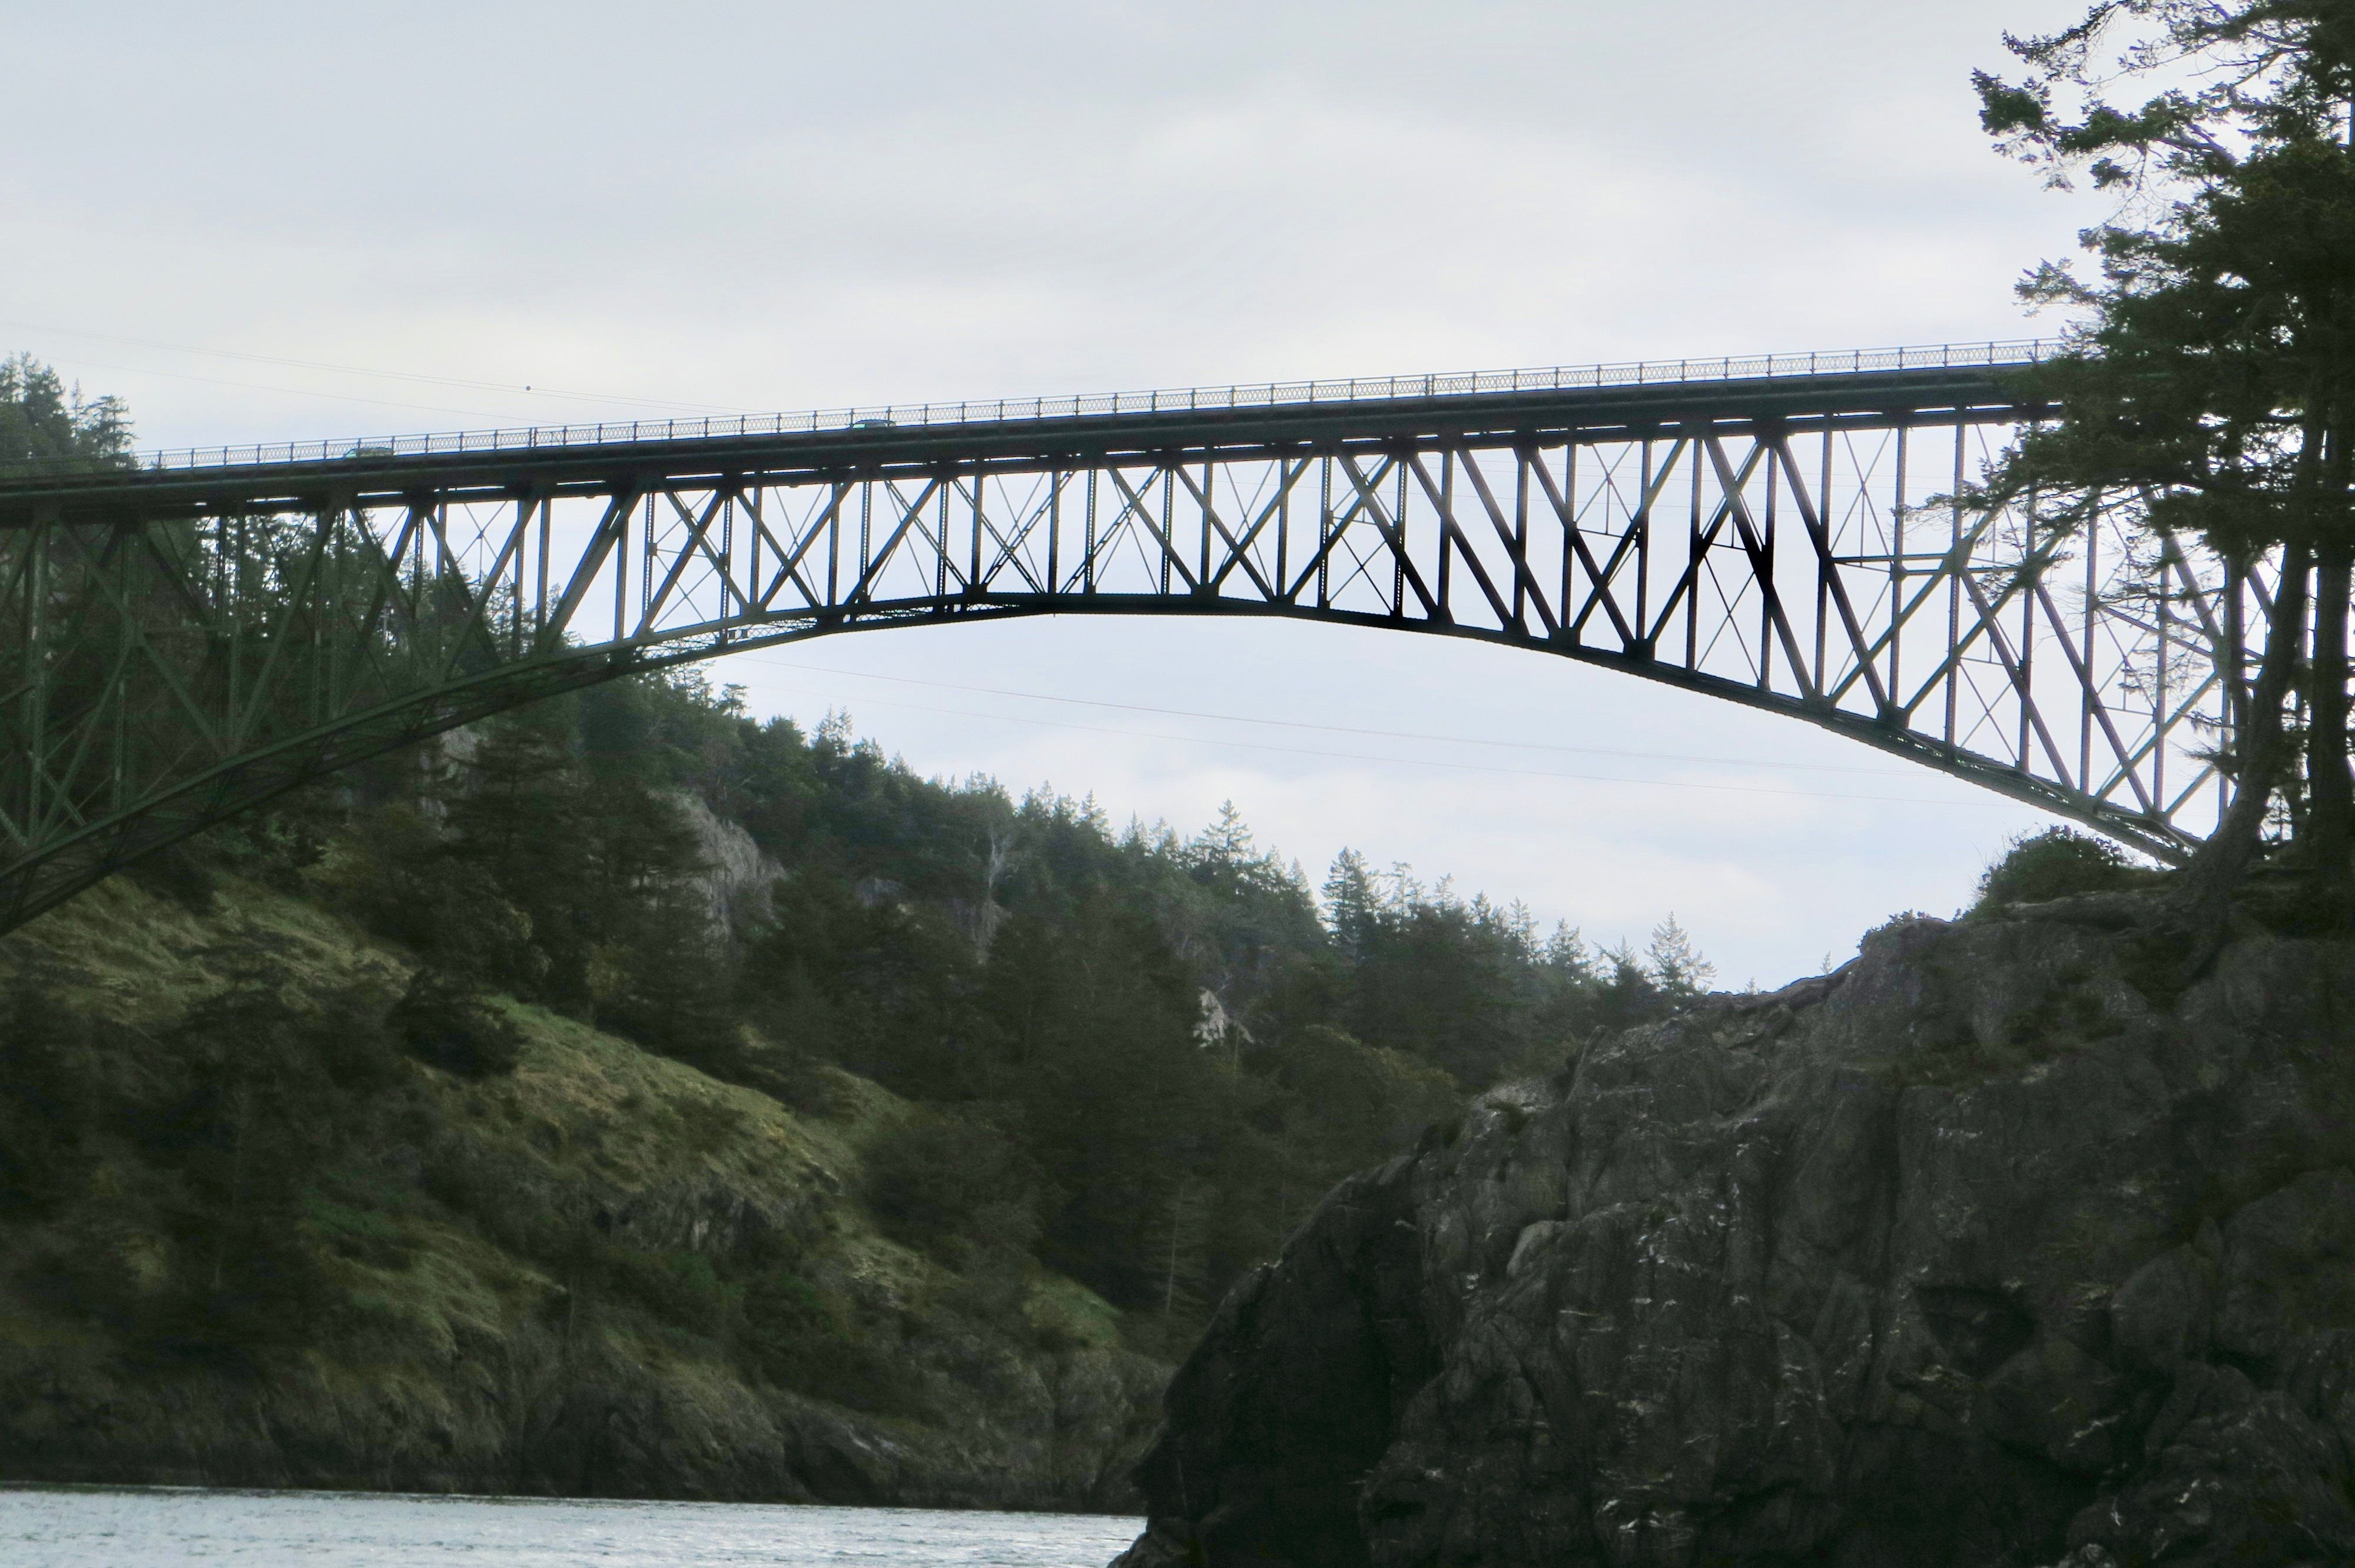 Weekend Getaway to Whidbey Island, Deception Pass Bridge